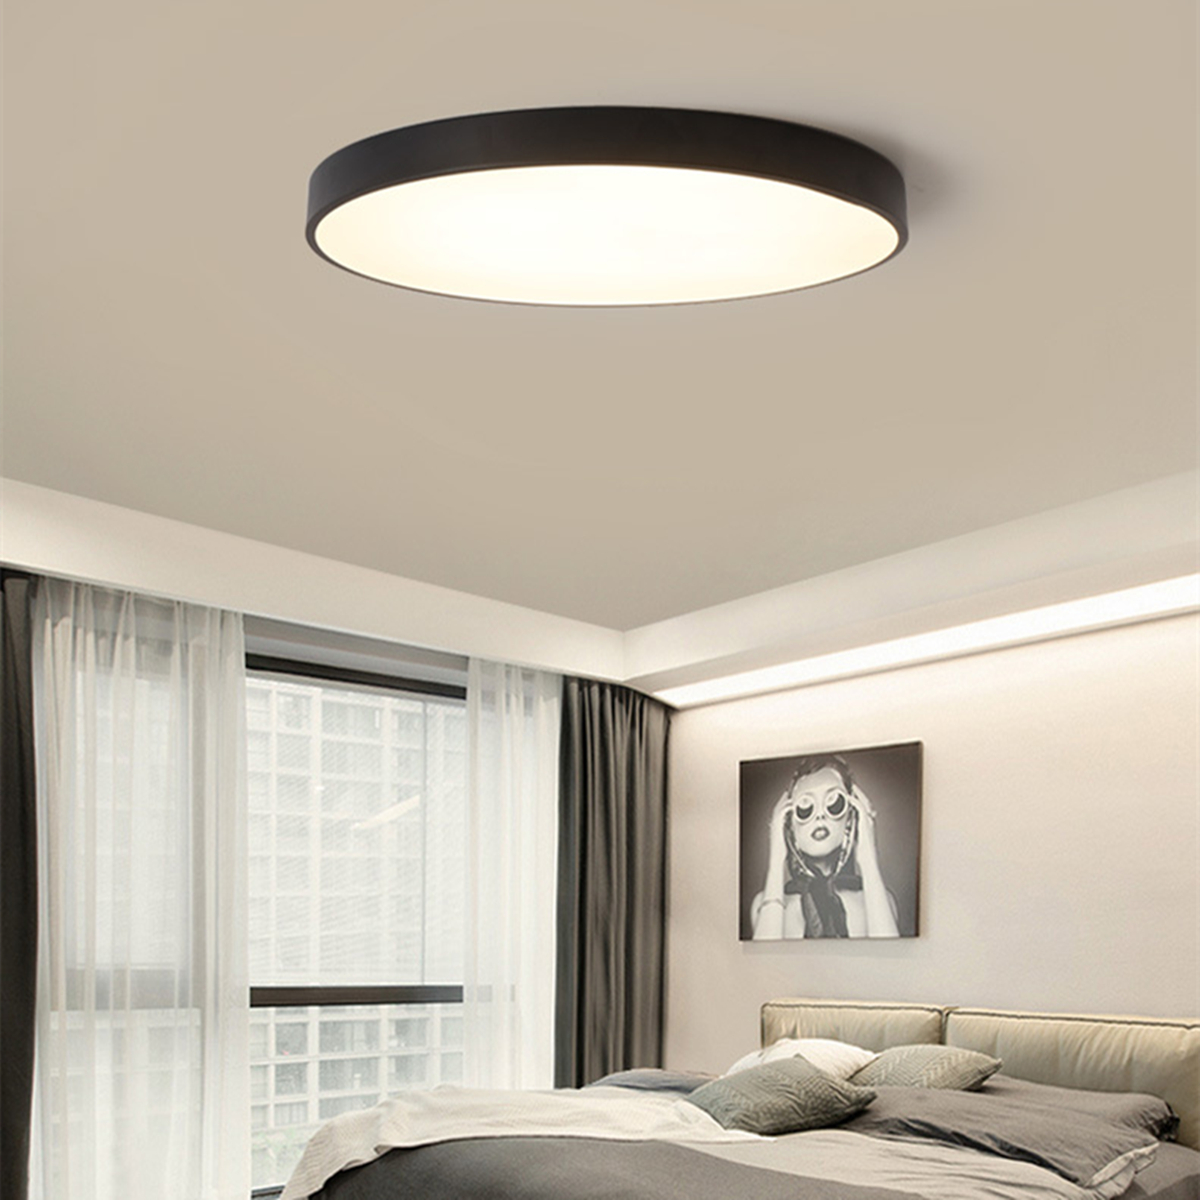 24w Led Dimmable Ceiling Light Round Flush Mounted Fixture: 12/18/24W Round LED Ceiling Light Mount Fixture Lamp For